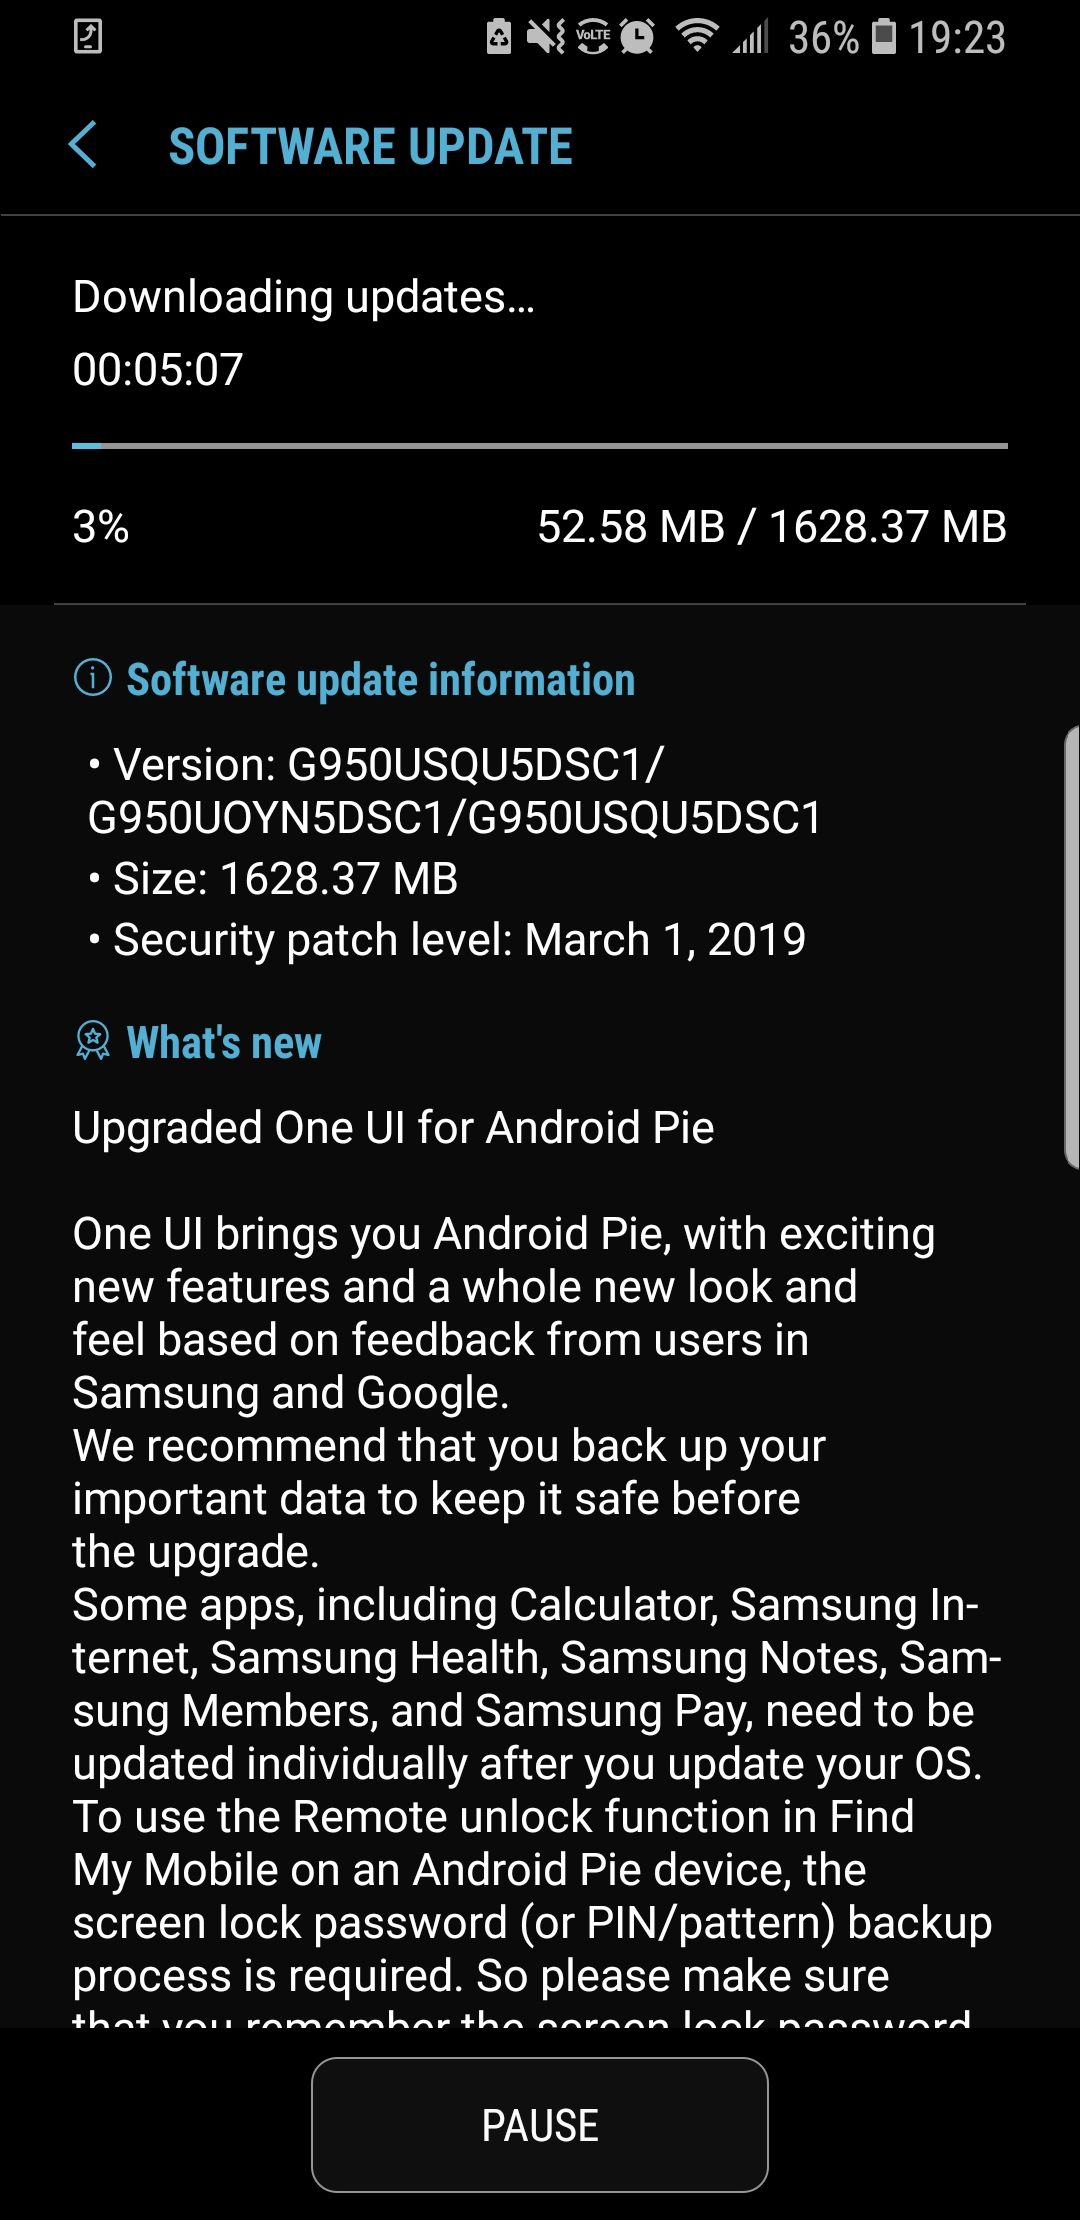 Update: Unlocked] Android 9 Pie rolling out to the Galaxy S8, S8+